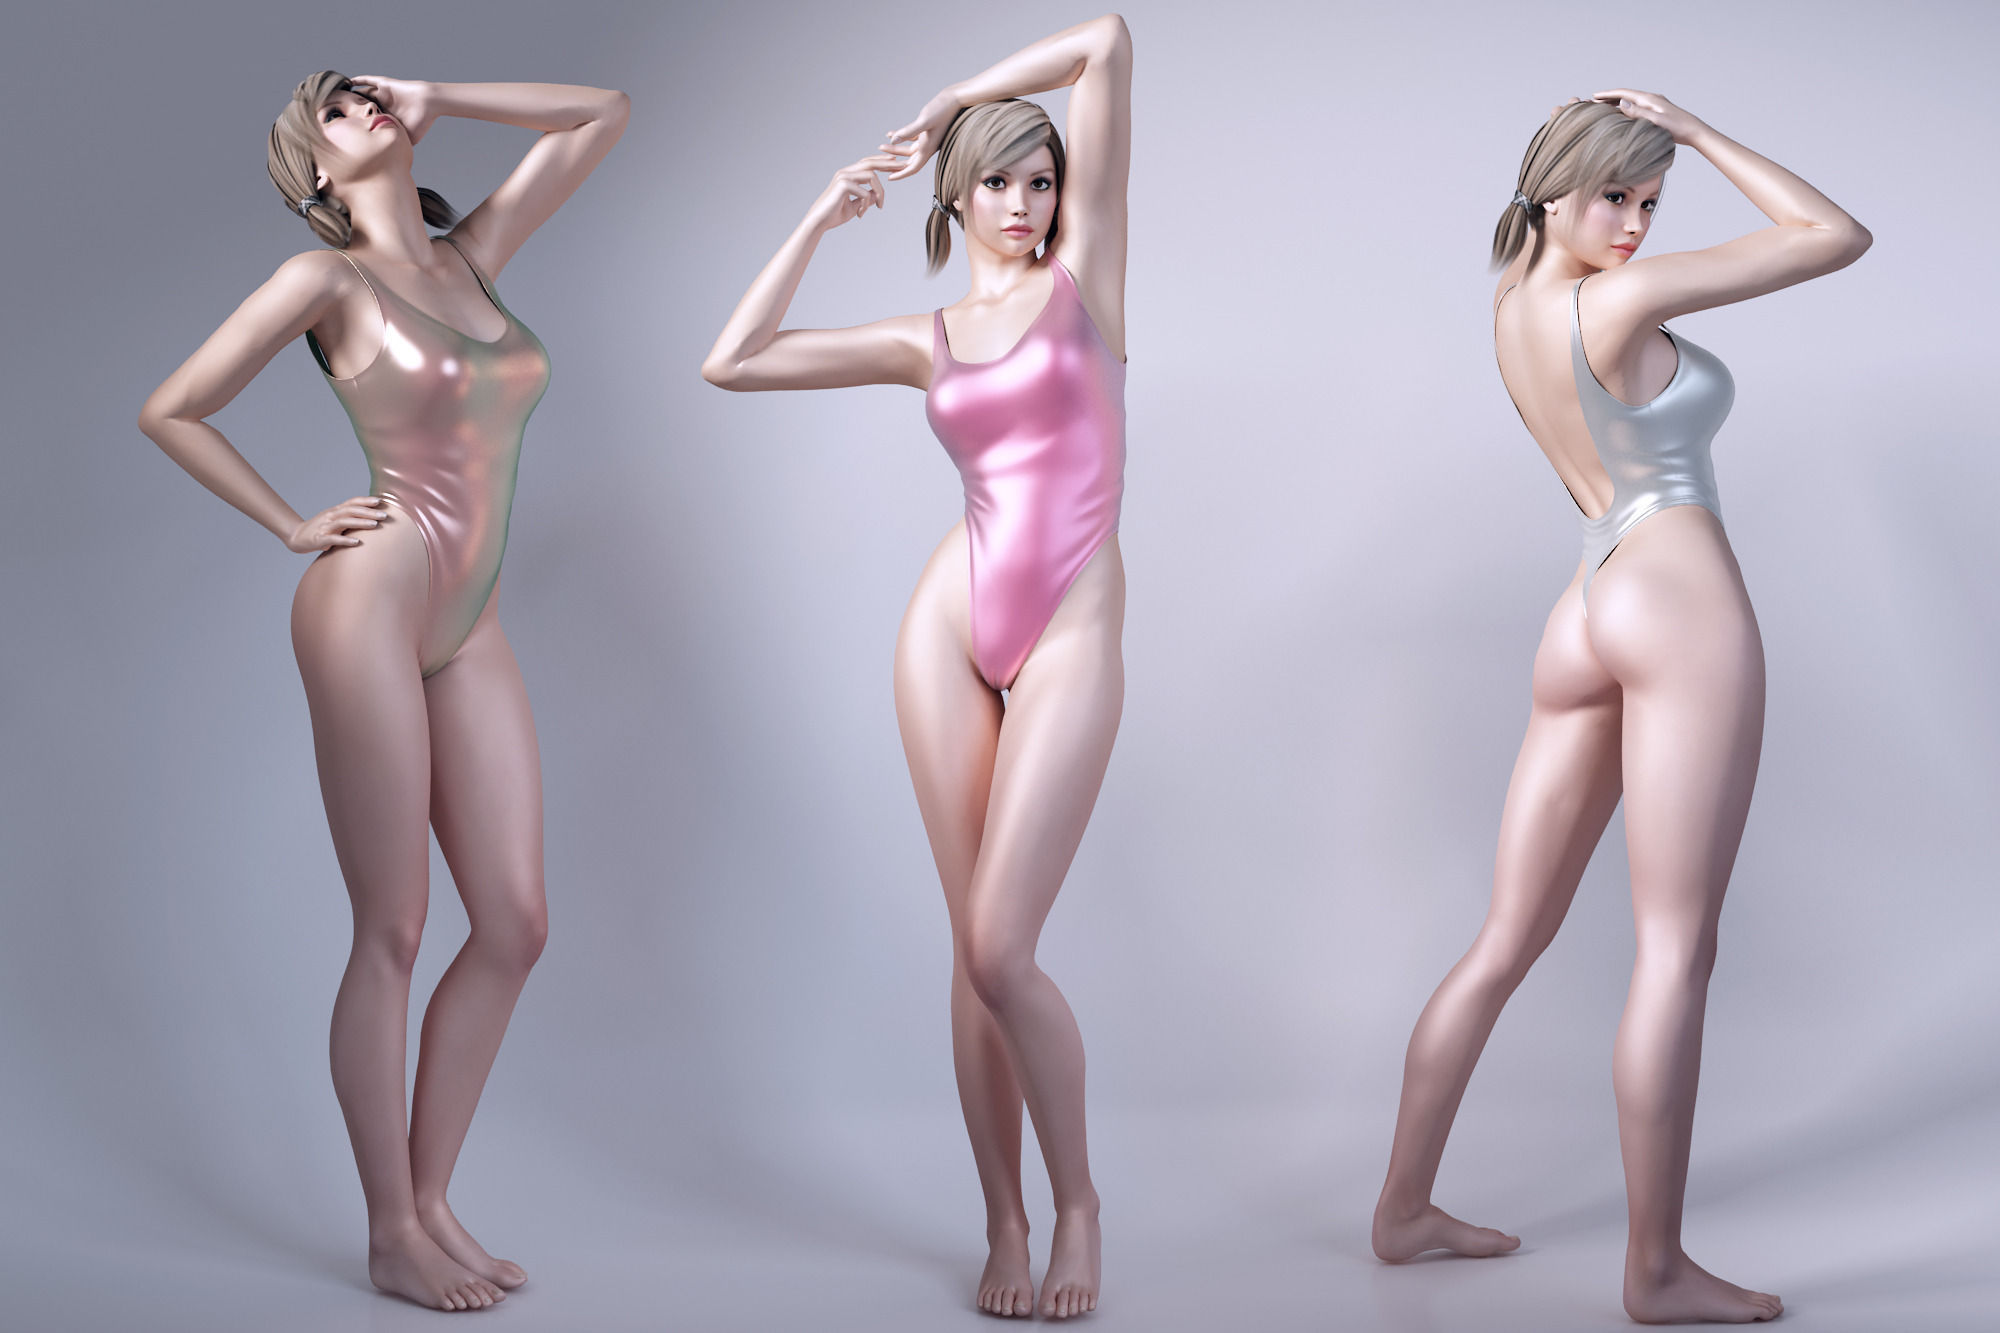 Daz 3d nude mod exposed scene